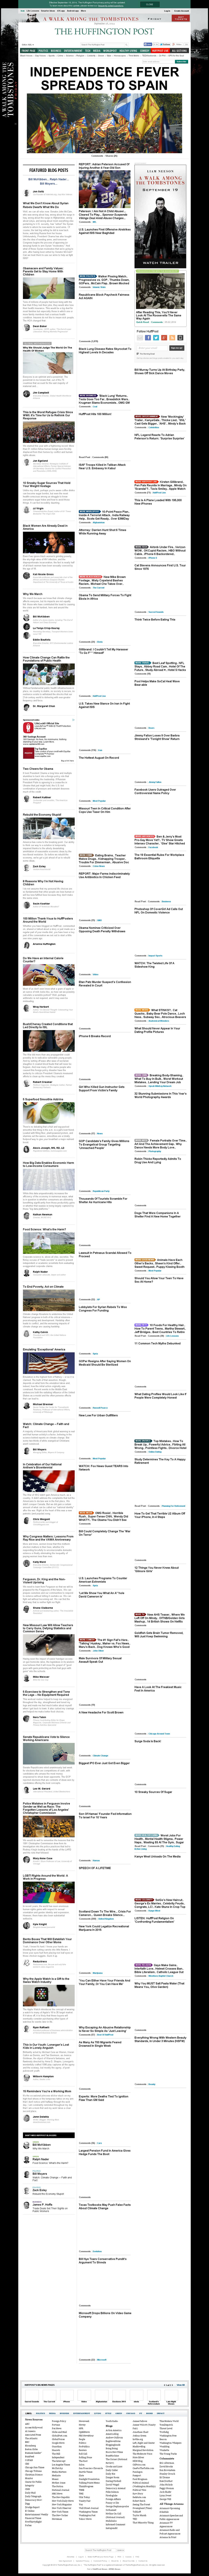 The Huffington Post at Tuesday Sept. 16, 2014, 10:07 a.m. UTC